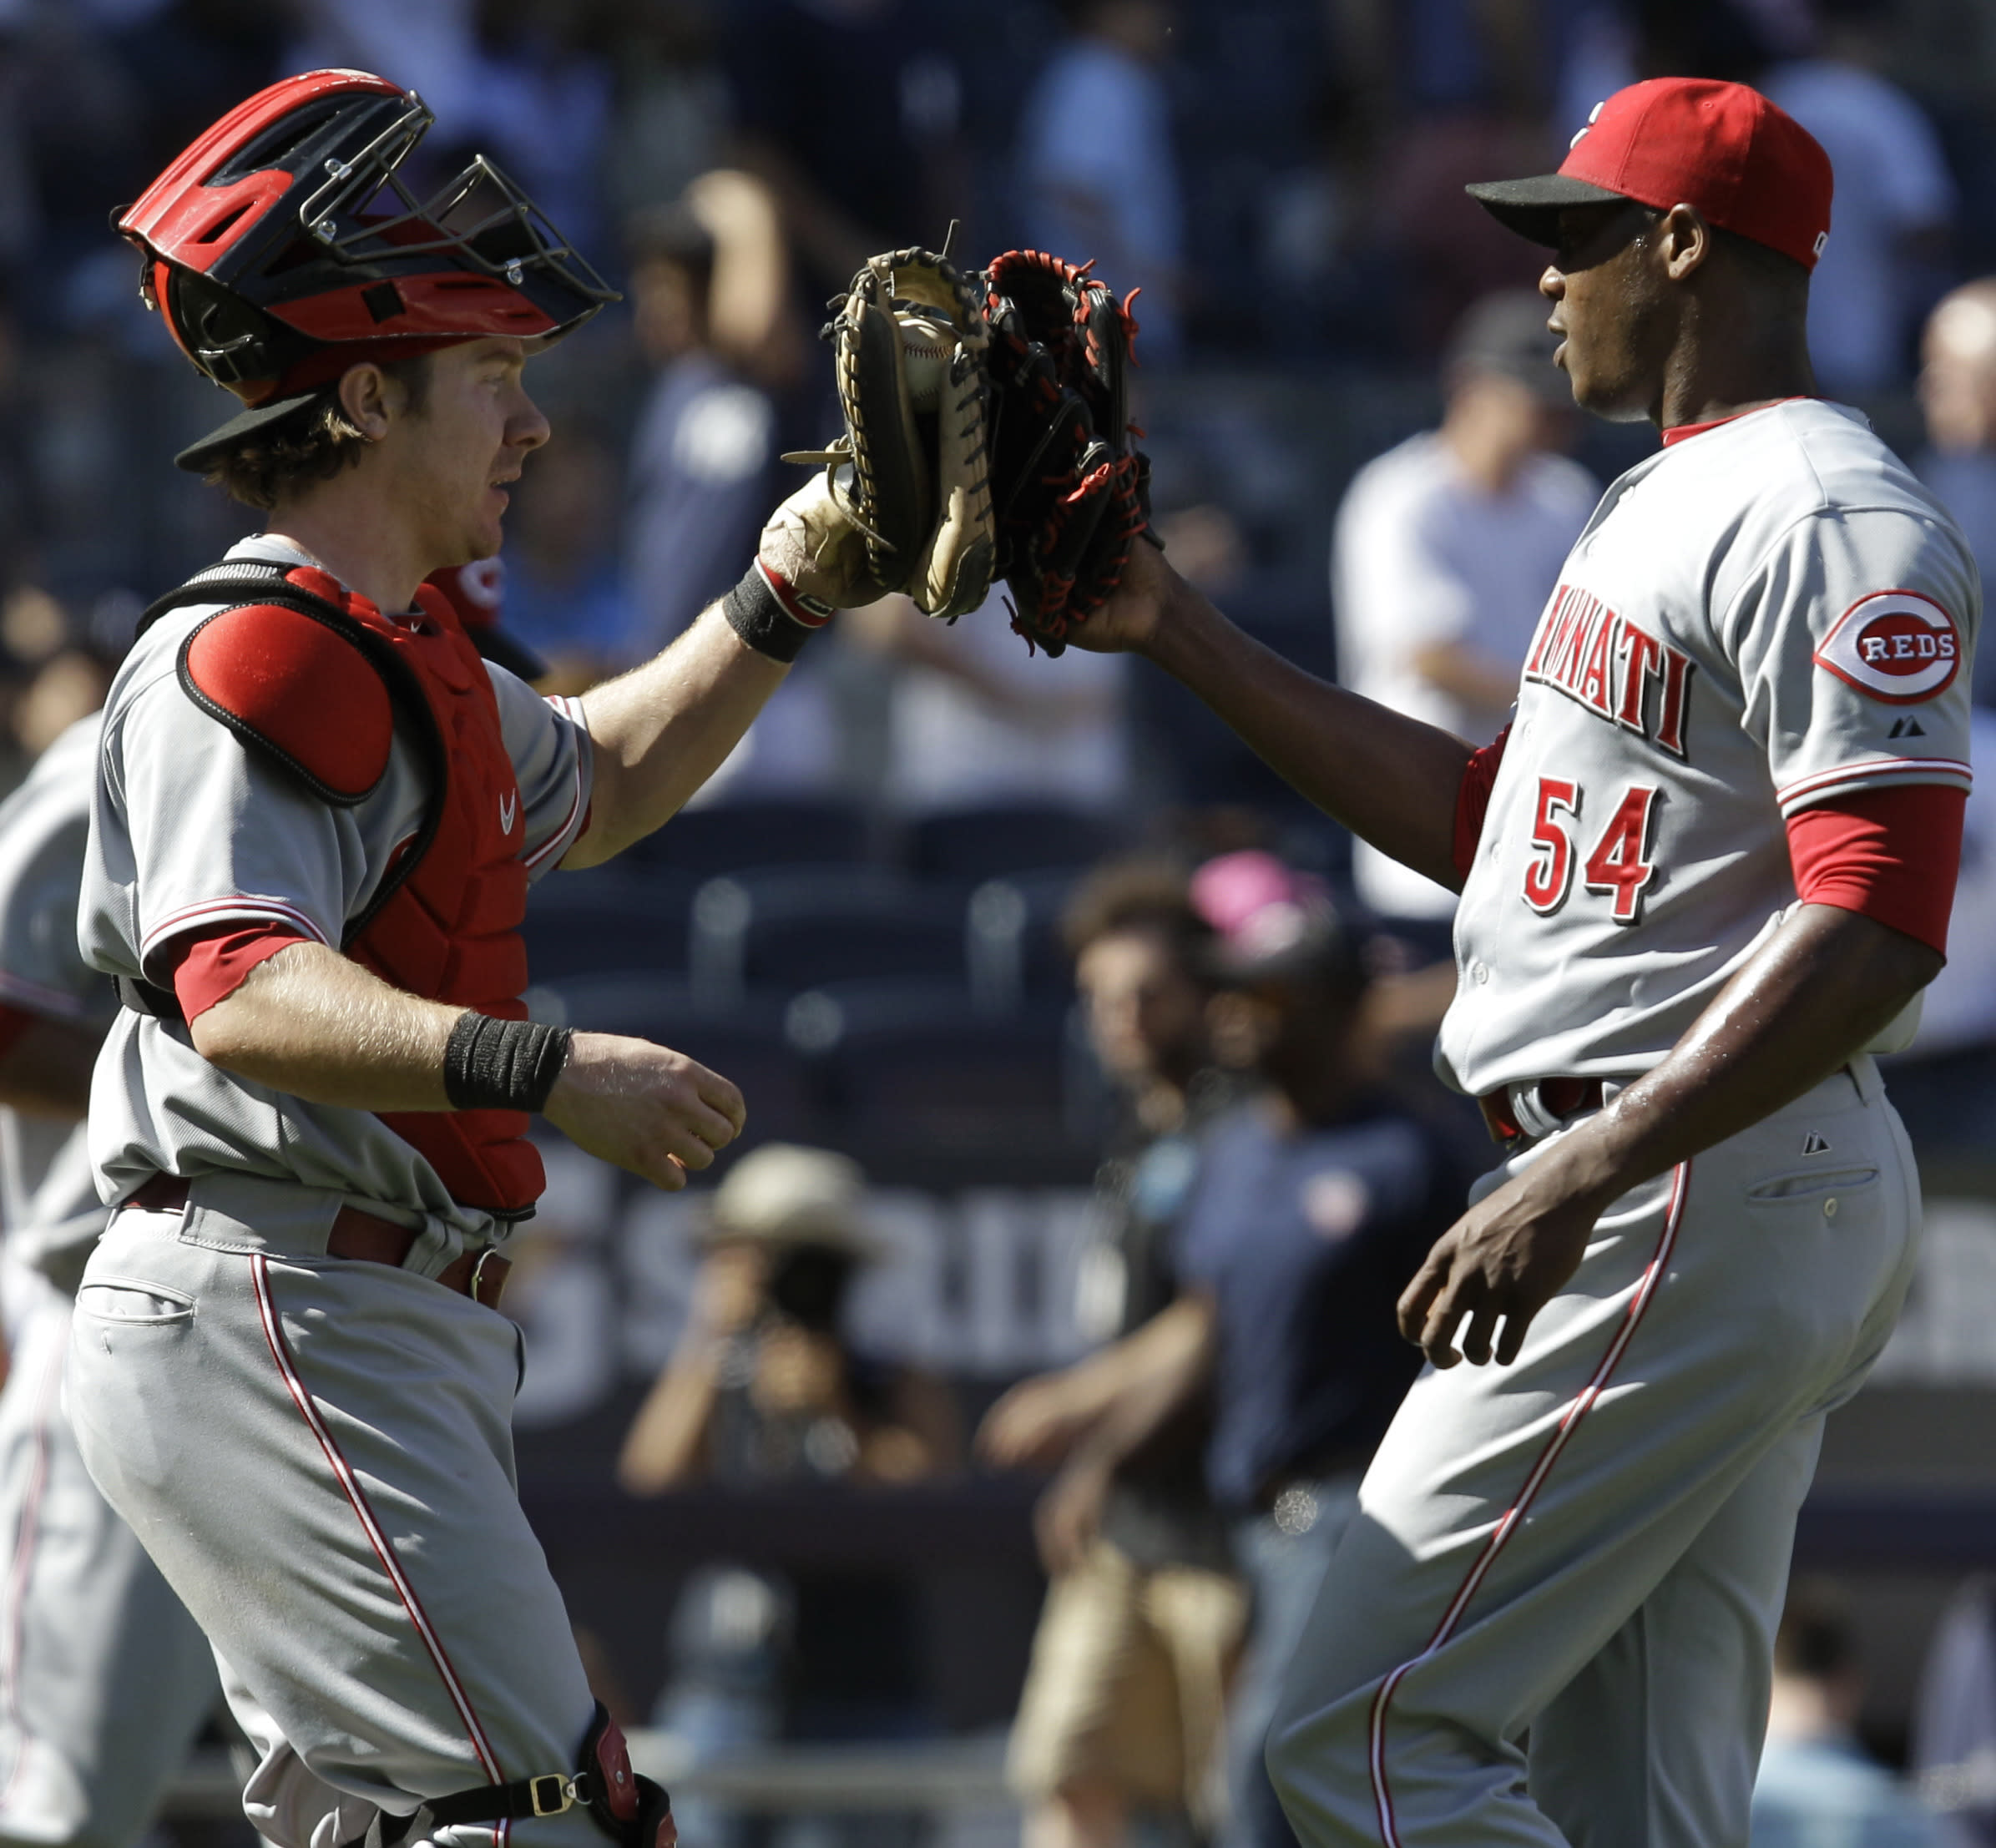 Cincinnati Reds catcher Ryan Hanigan, left, congratulates Reds reliever Aroldis Chapman, who closed out the Reds' 5-2 victory over the New York Yankees, after an interleague baseball game at Yankee Stadium in New York, Sunday, May 20, 2012. (AP Photo/Kathy Willens)